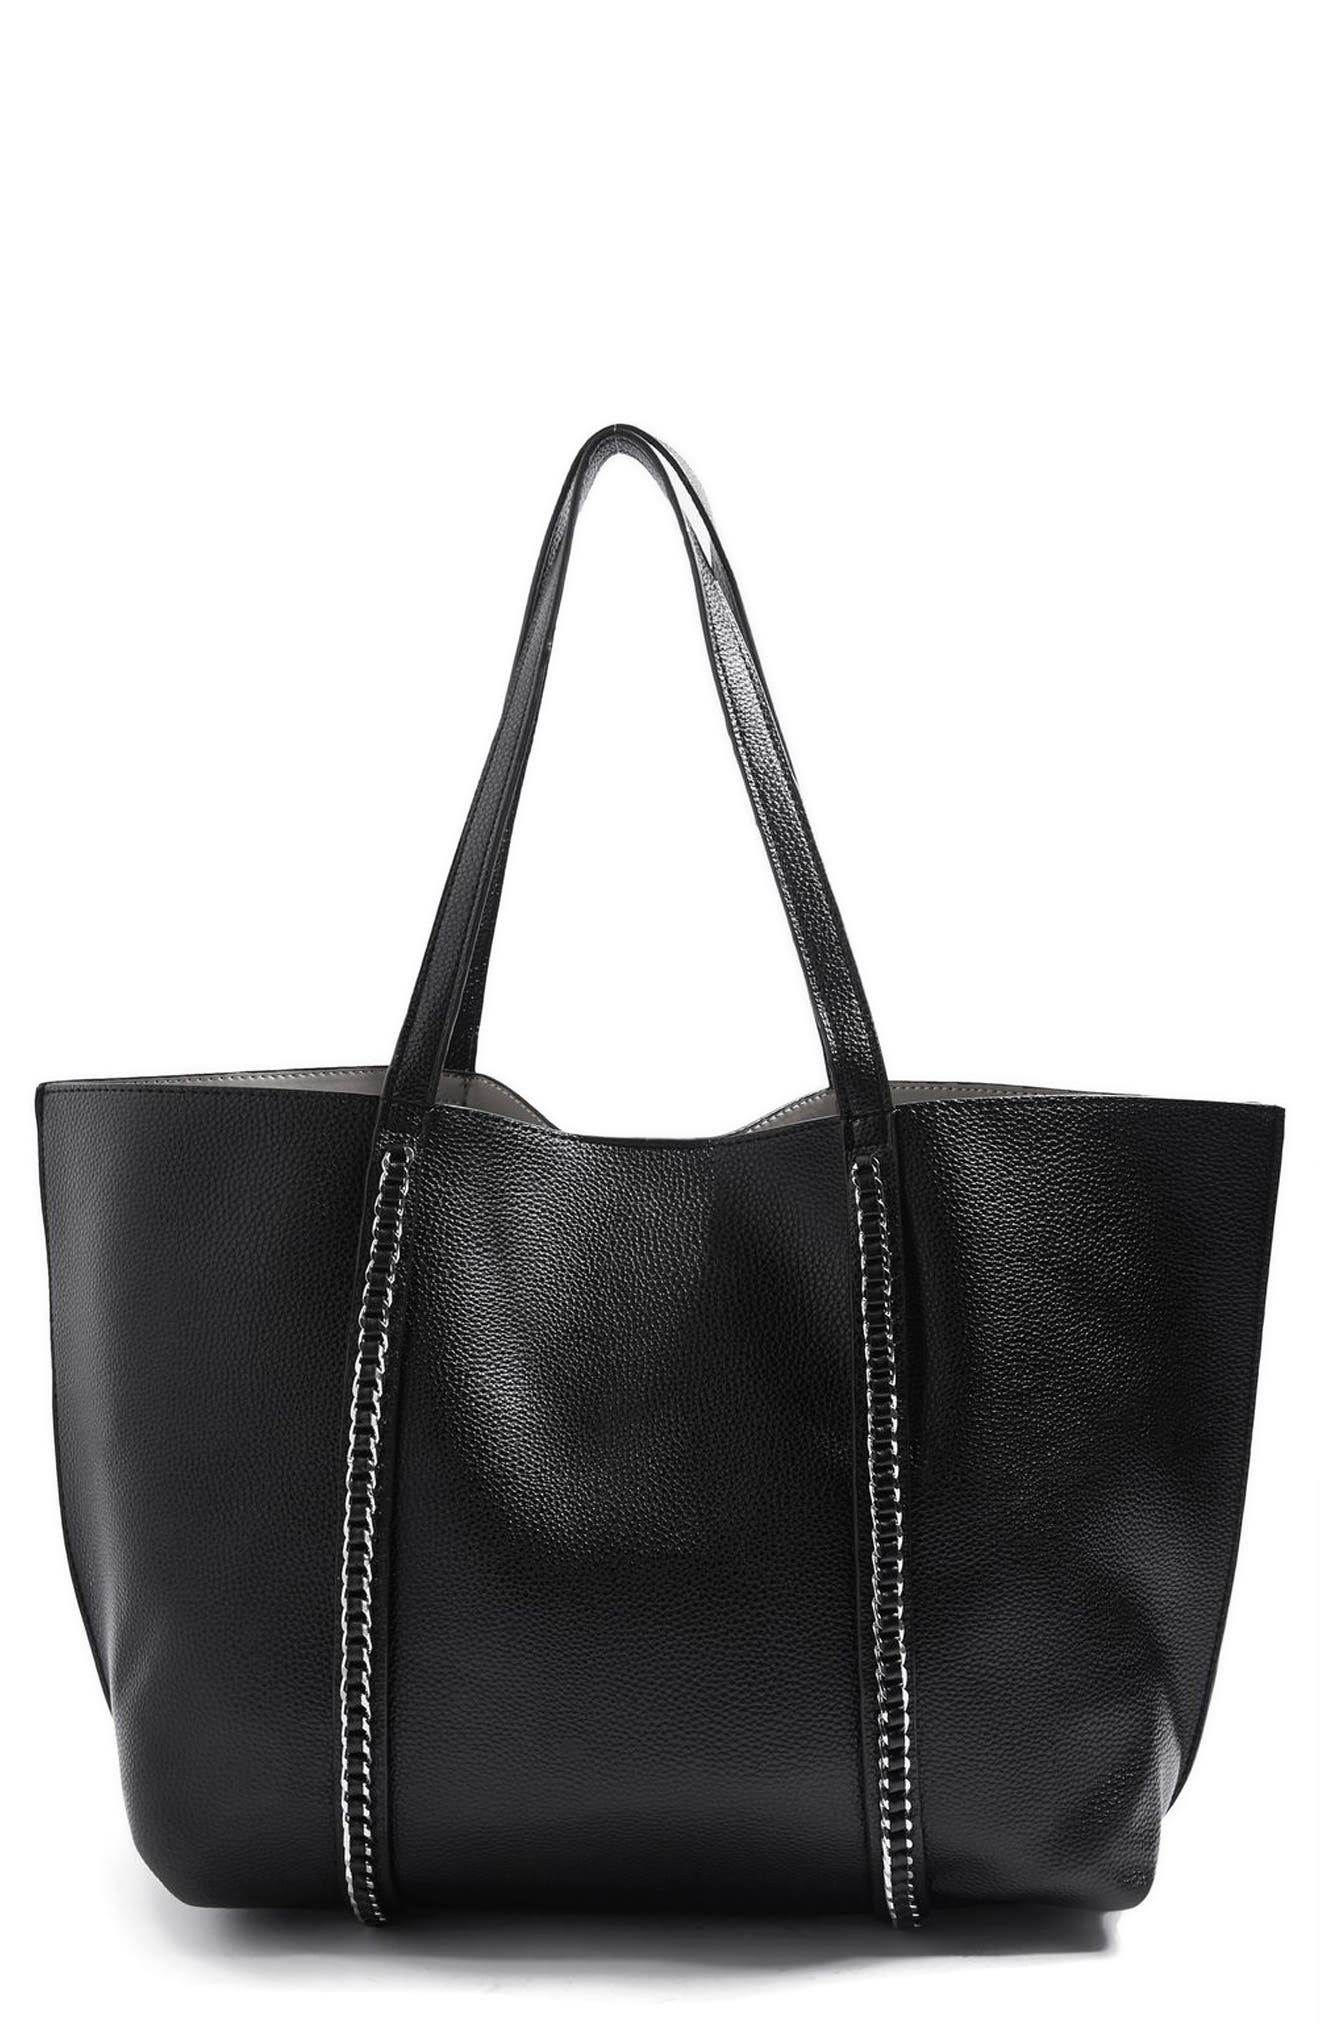 Alternate Image 1 Selected - Topshop Sabrina Chain Trim Faux Leather Shopper